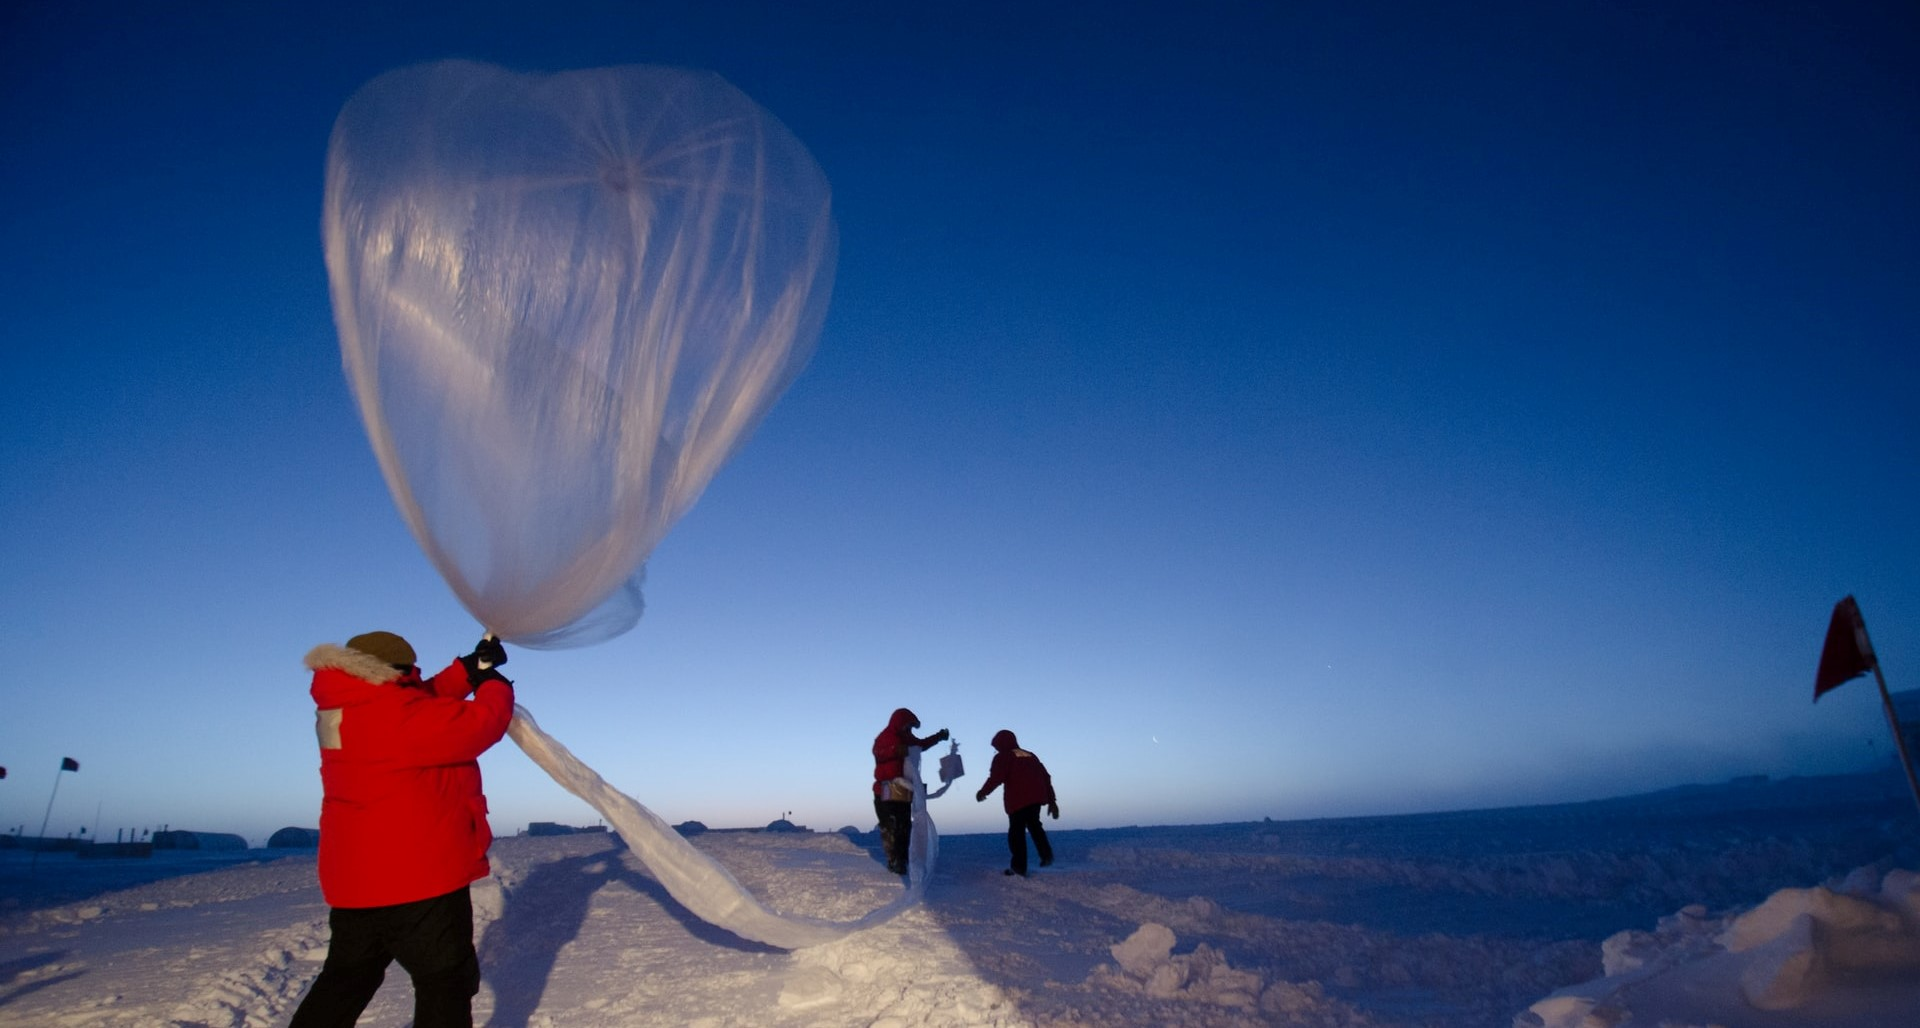 a person in the snow holding a weather balloon